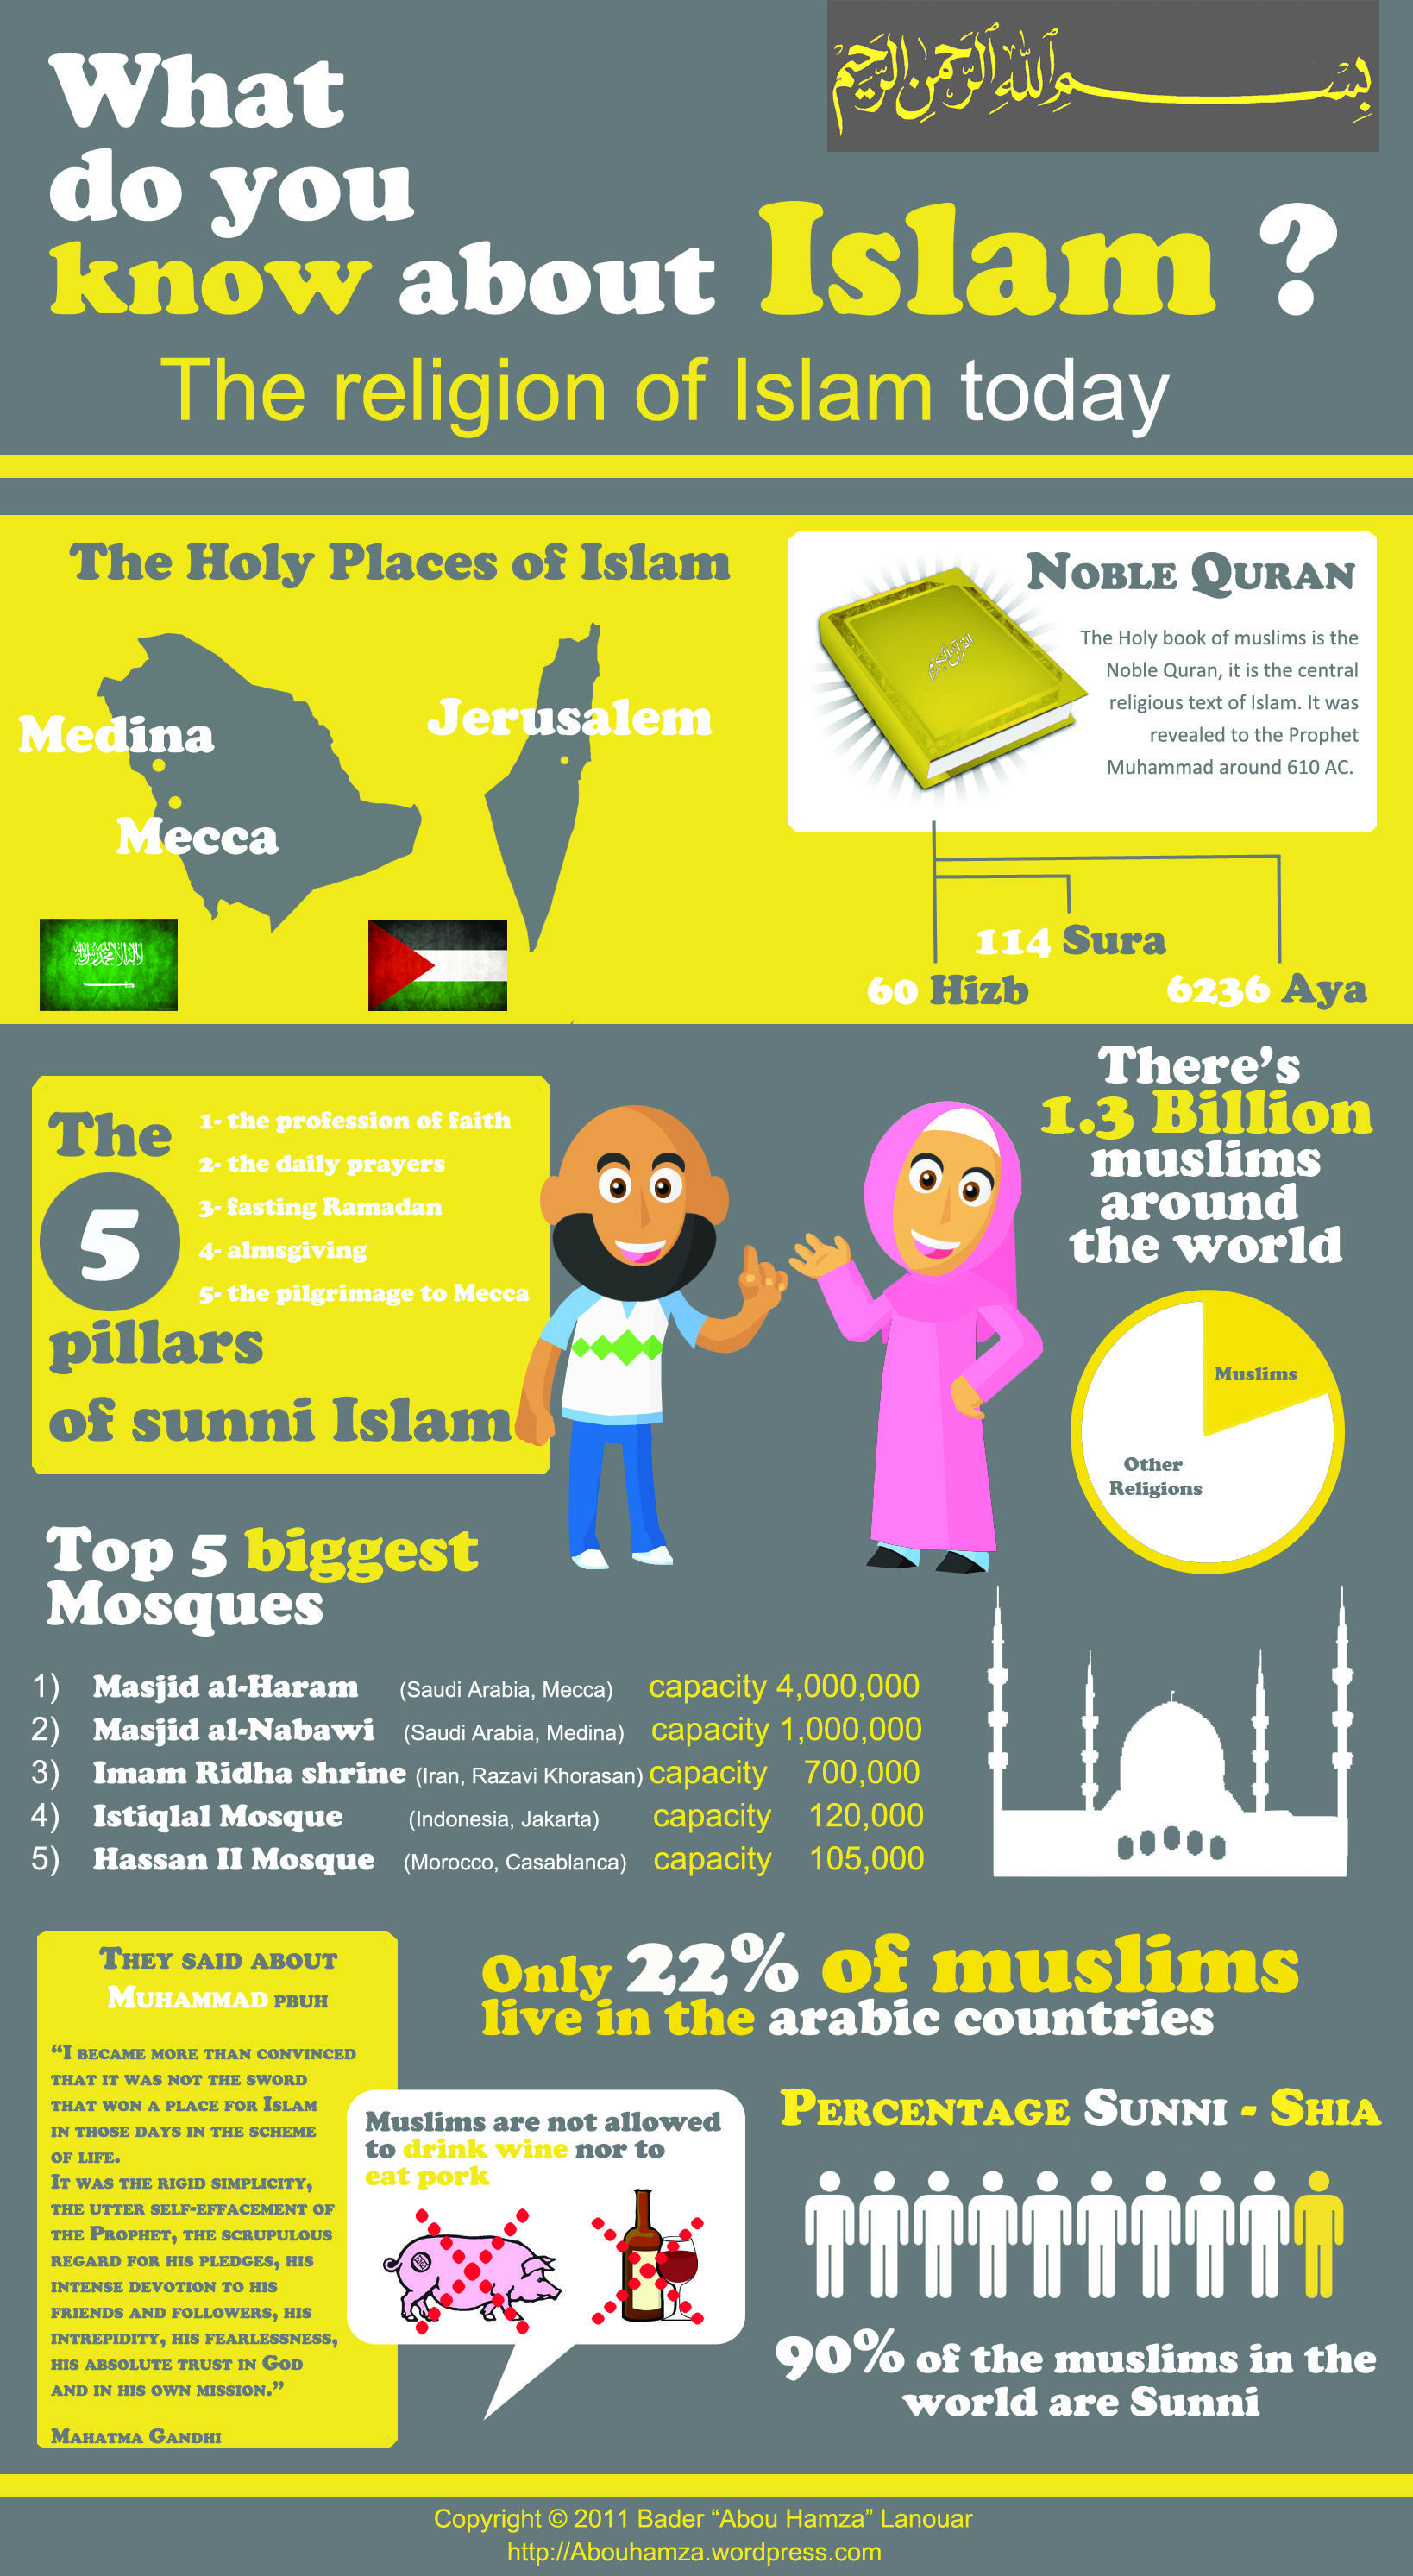 Islam is one of the biggest religions and the fastest growing religions in the world. This infogrpahic takes a look at basic facts about Islam and Muslims